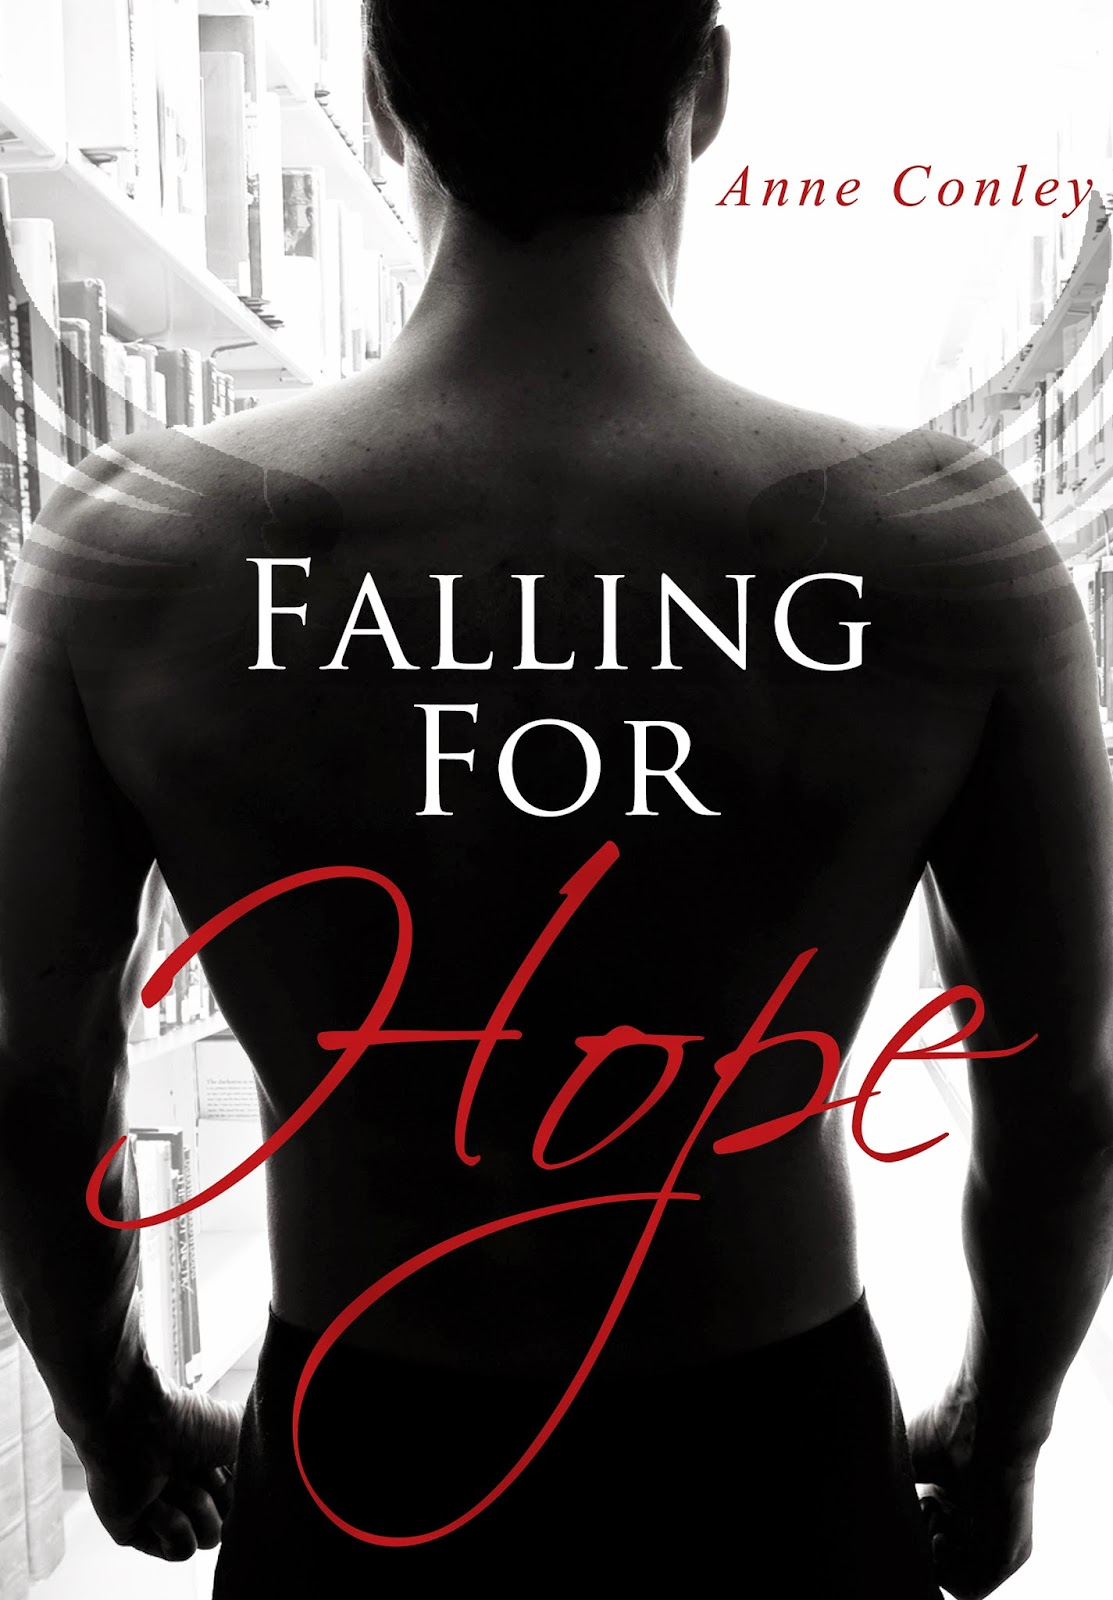 https://www.amazon.com/Falling-Hope-Four-Winds-3-ebook/dp/B00ITU6Q60/ref=as_sl_pc_tf_til?tag=theconcor-20&linkCode=w00&linkId=3QWLFFDNG375K2D4&creativeASIN=B00ITU6Q60